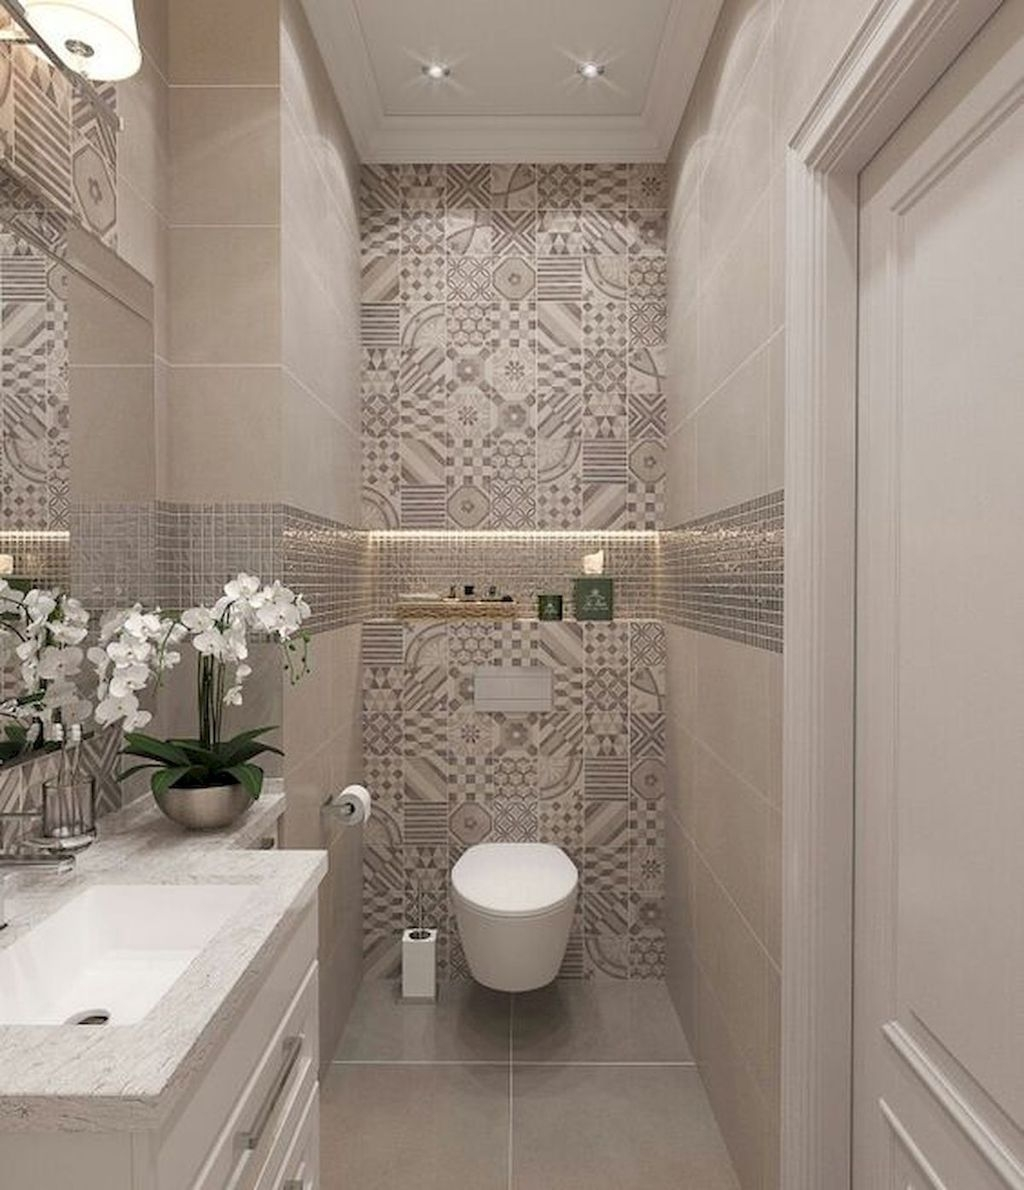 30+ Splendid Small Bathroom Remodel Ideas For You - TRENDECORS on Small Bathroom Renovation Ideas  id=23613